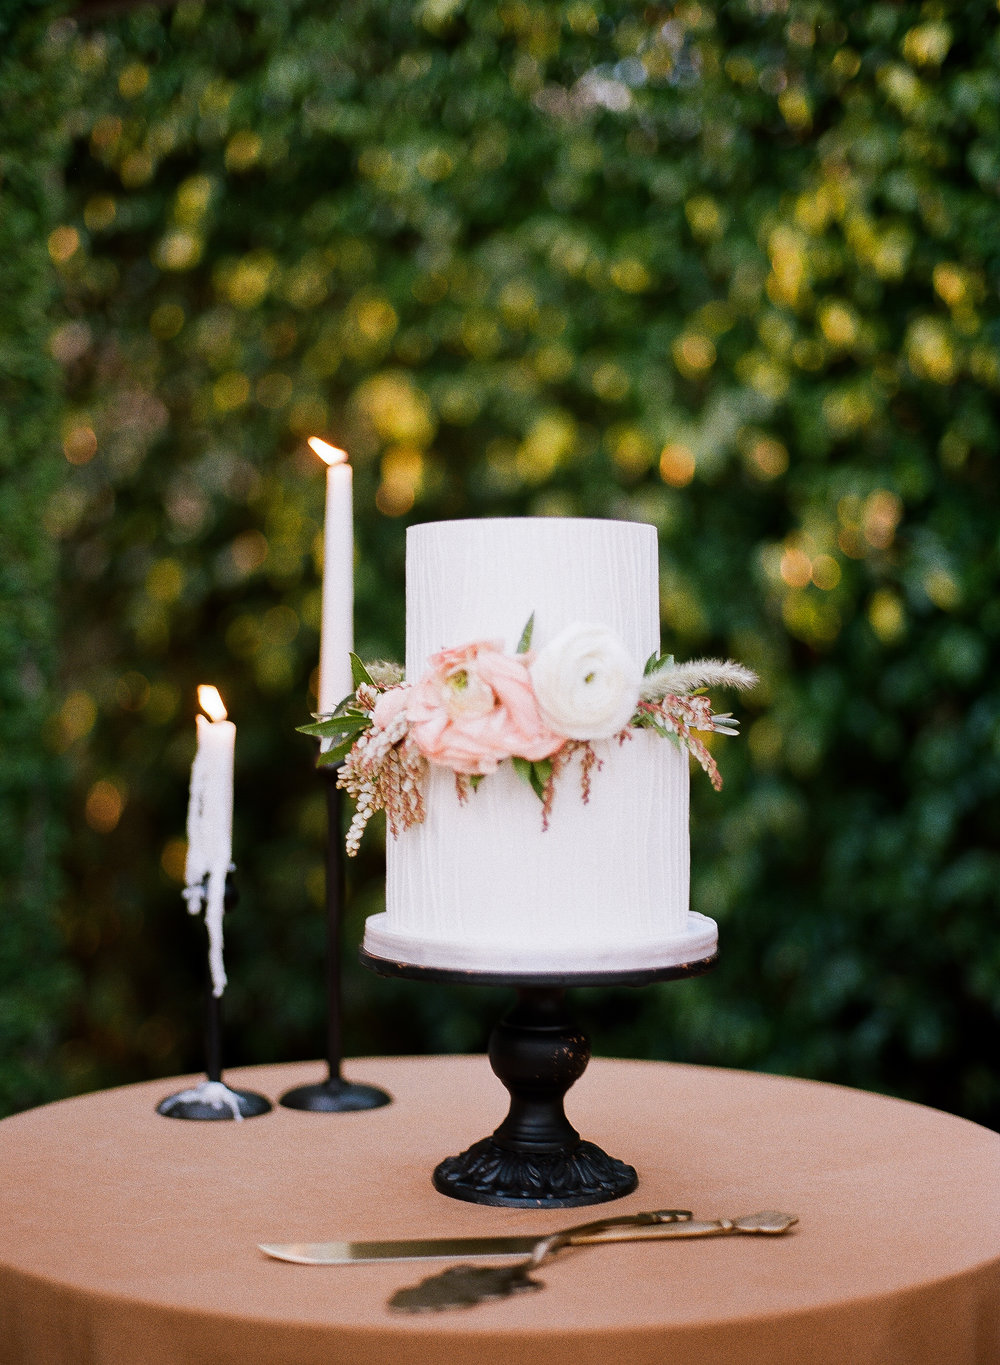 44-earth-and-sugar-wedding-cake.jpg